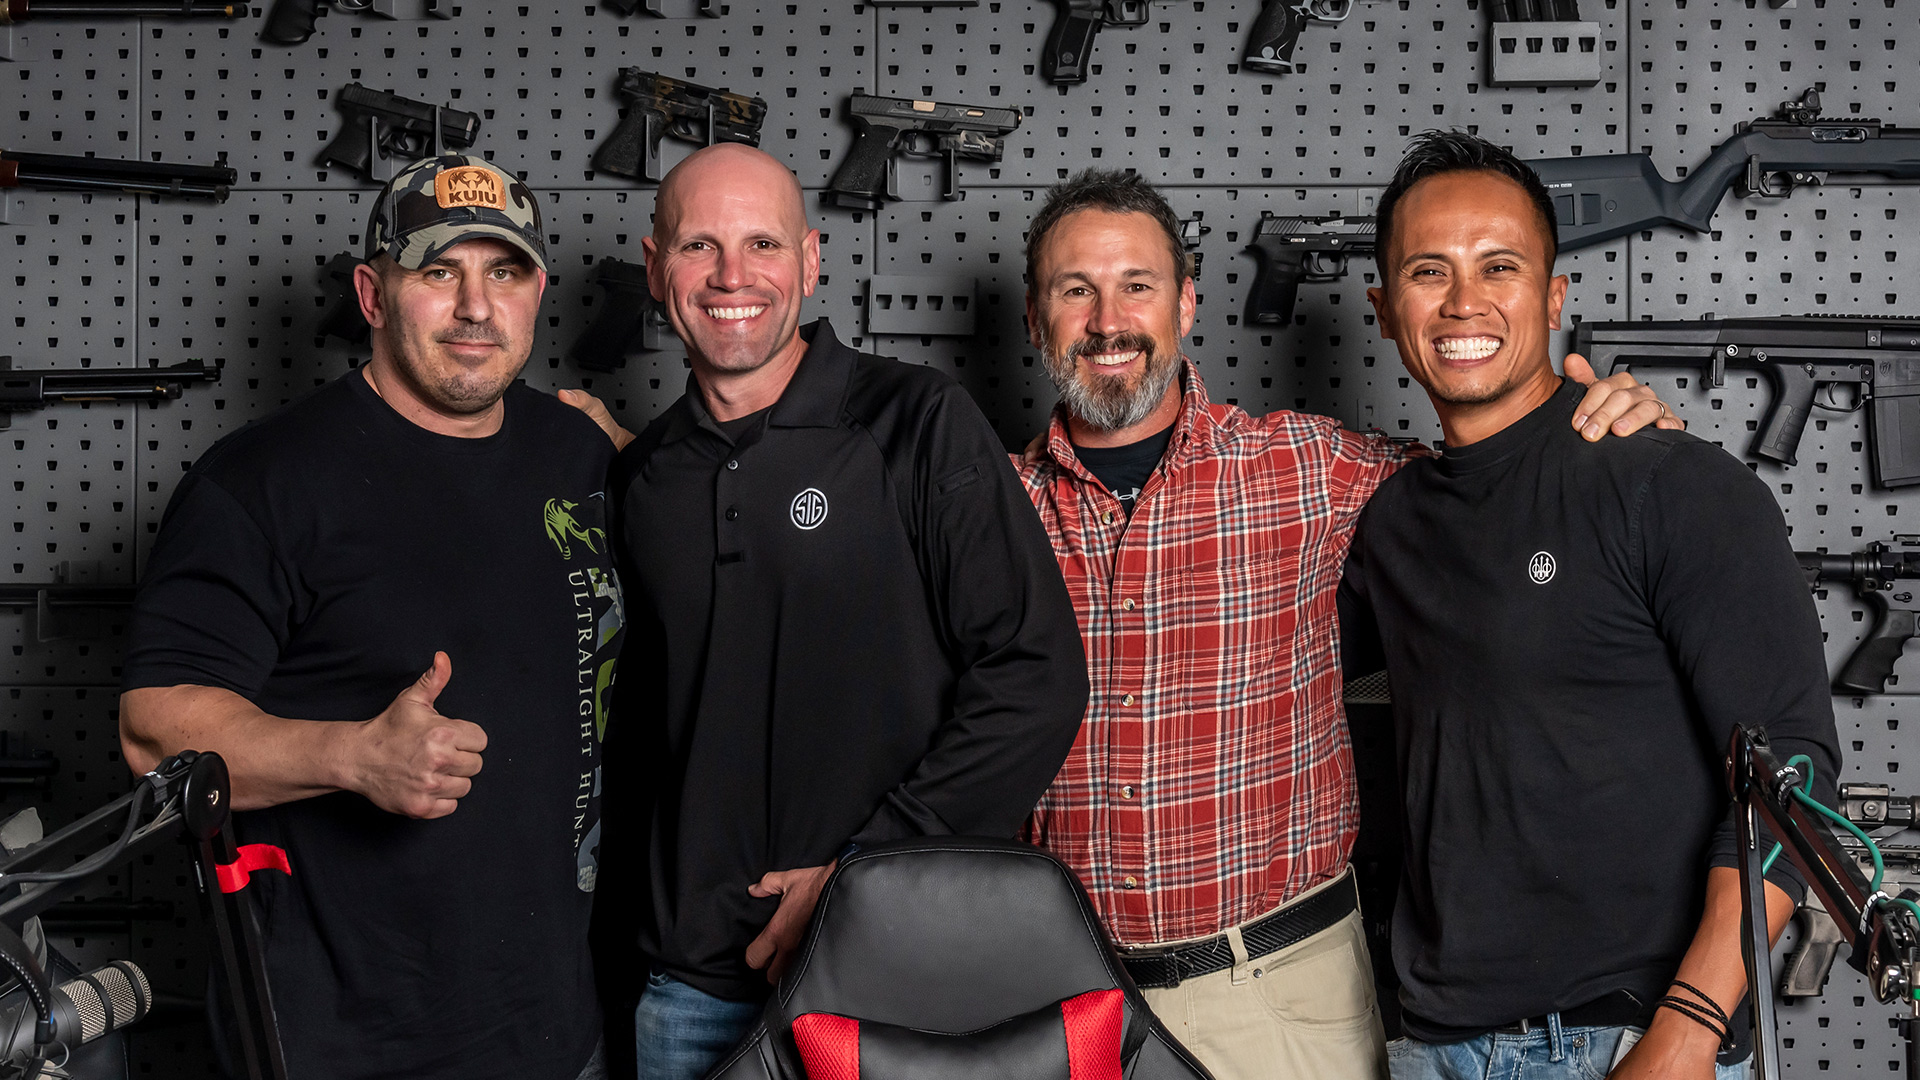 Pro Shooter Roundtable with Max, JJ, and Doug